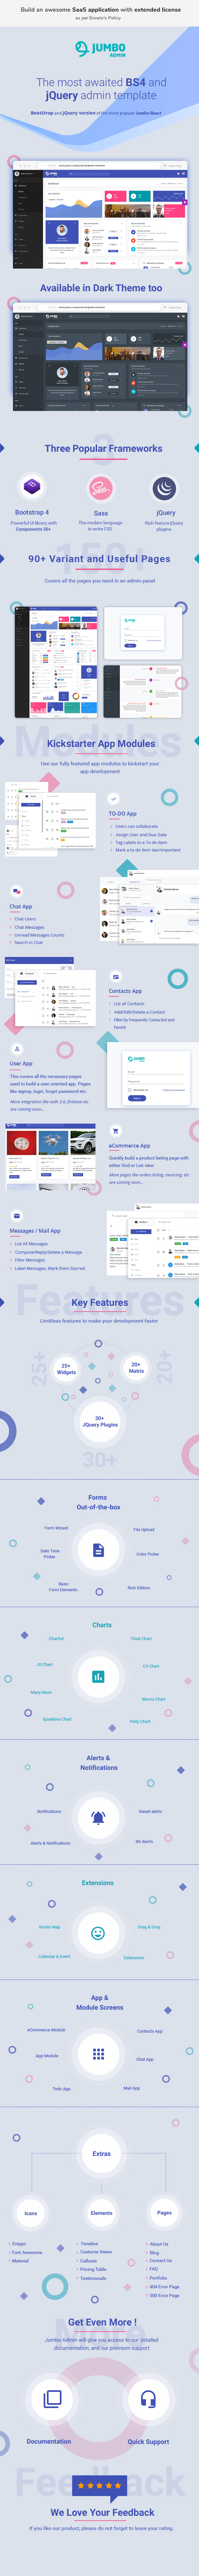 BootStrap 4 jQuery Admin Template - Jumbo Admin